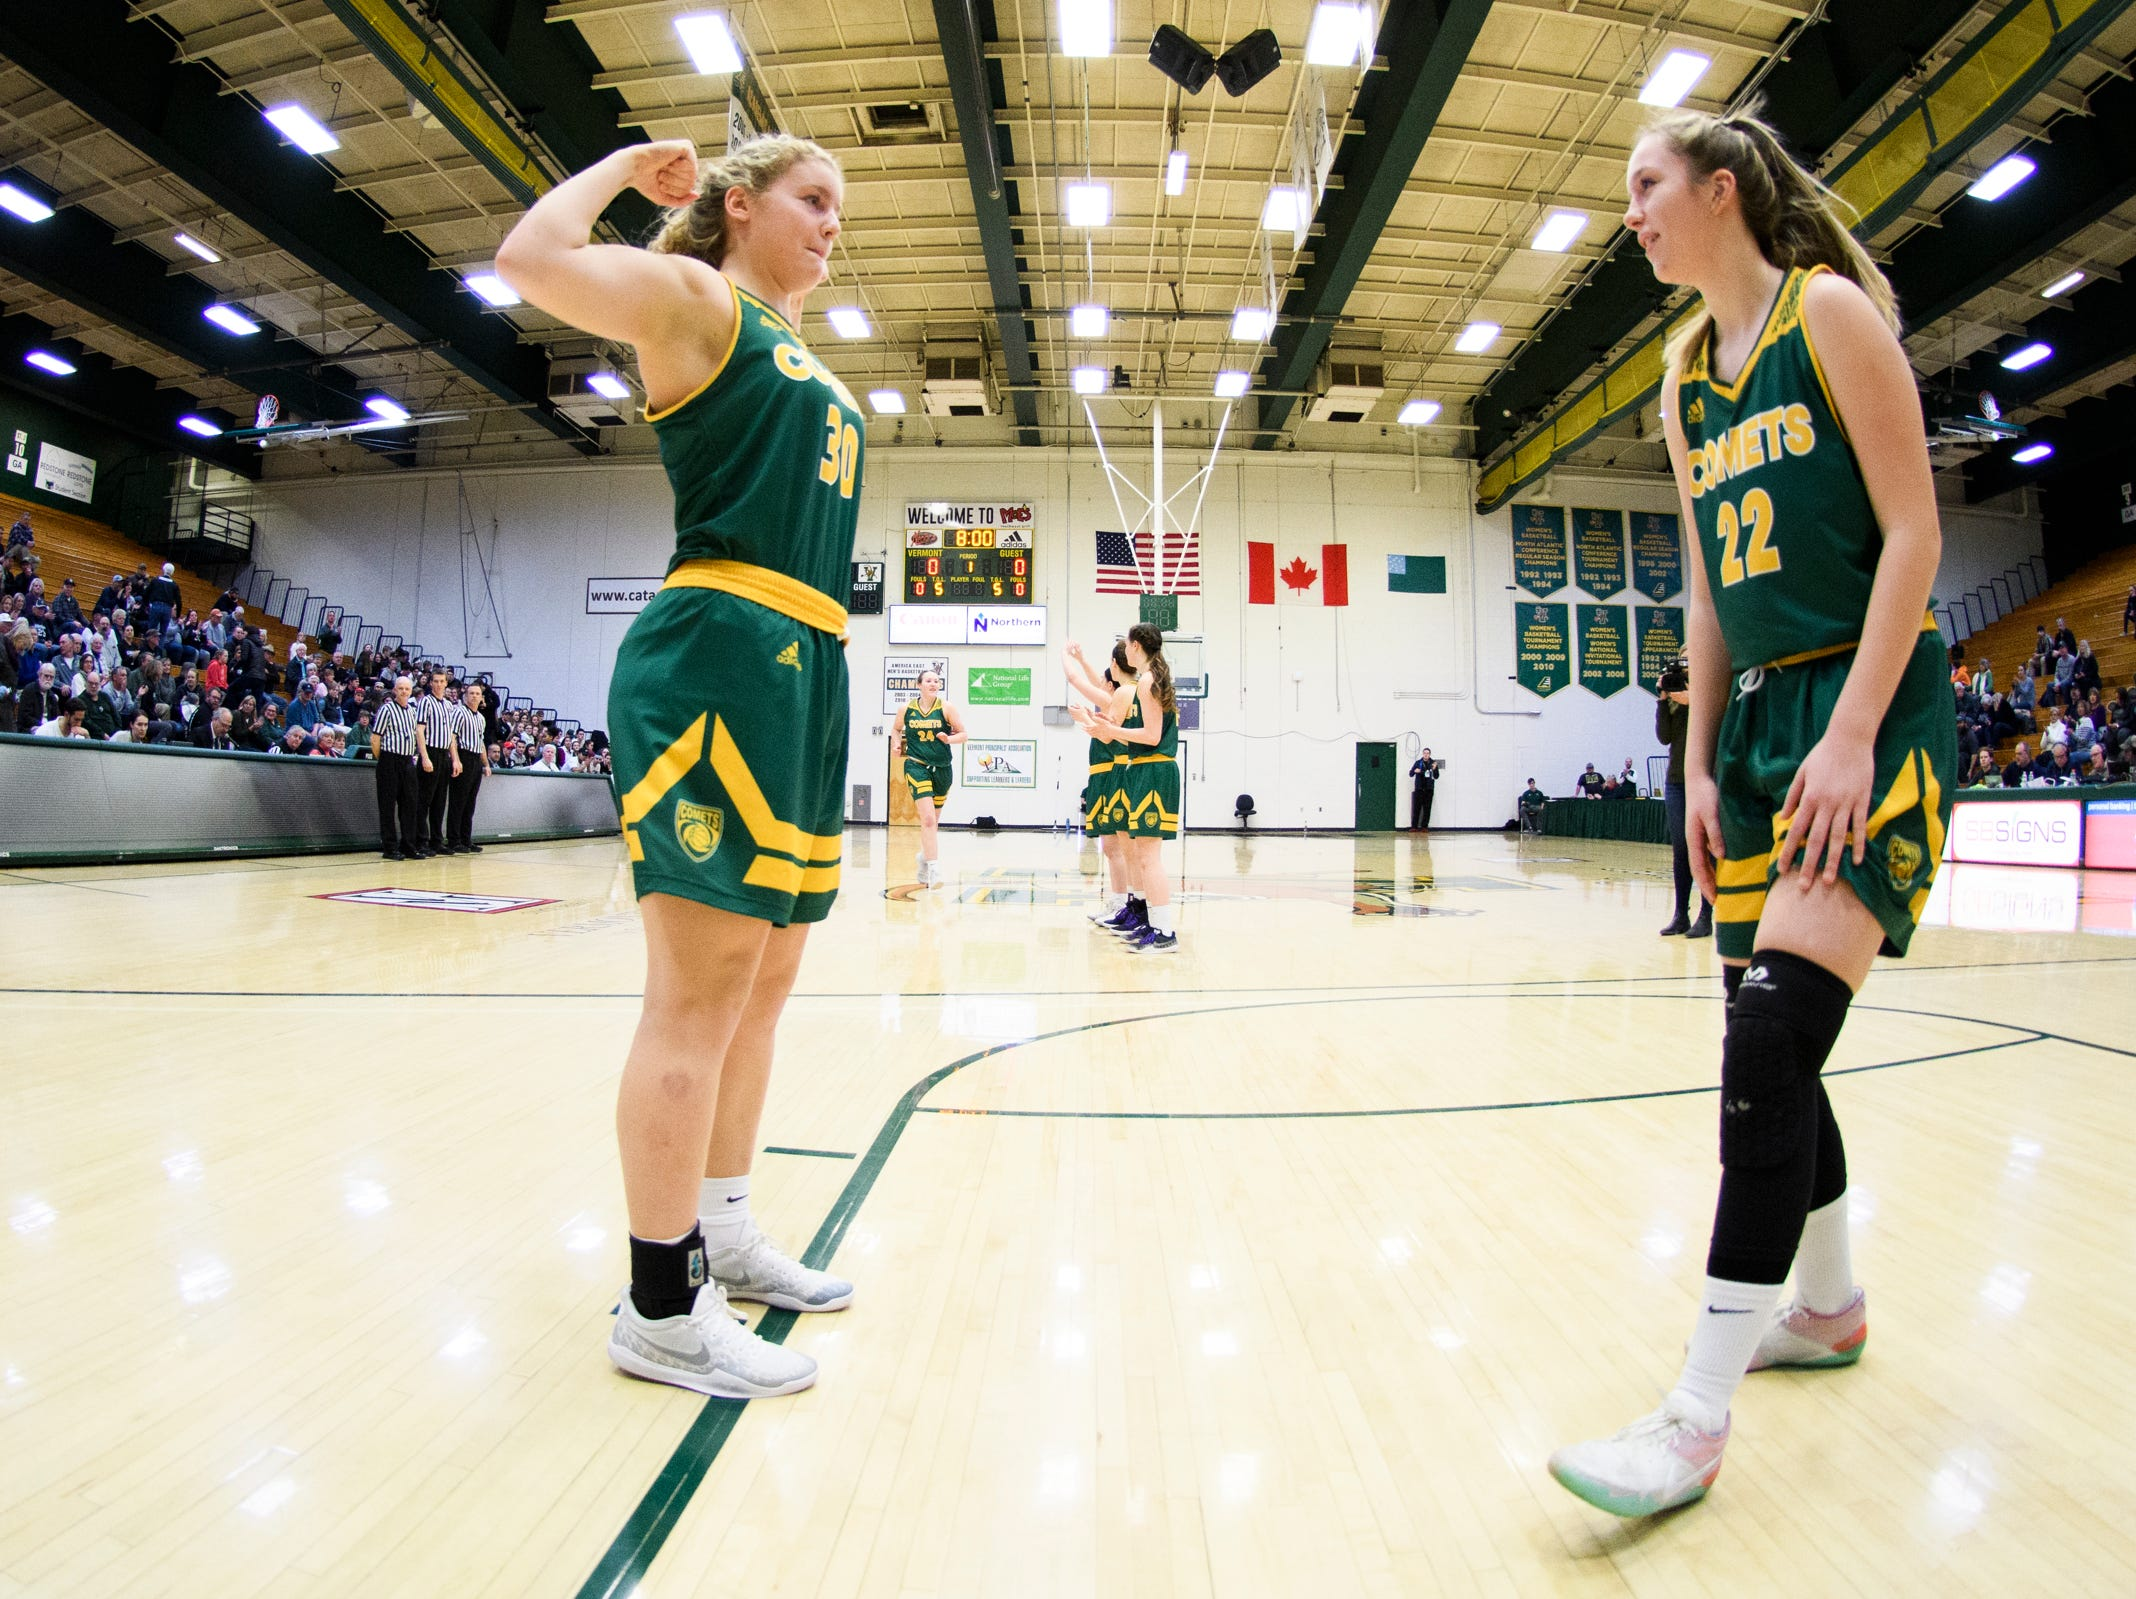 BFA's Kelly Laggis (30) takes the court during the girls semifinal basketball game between the BFA St. Albans Comets and the St. Johnsbury Hilltoppers at Patrick Gym on Wednesday night March 6, 2019 in Burlington, Vermont.